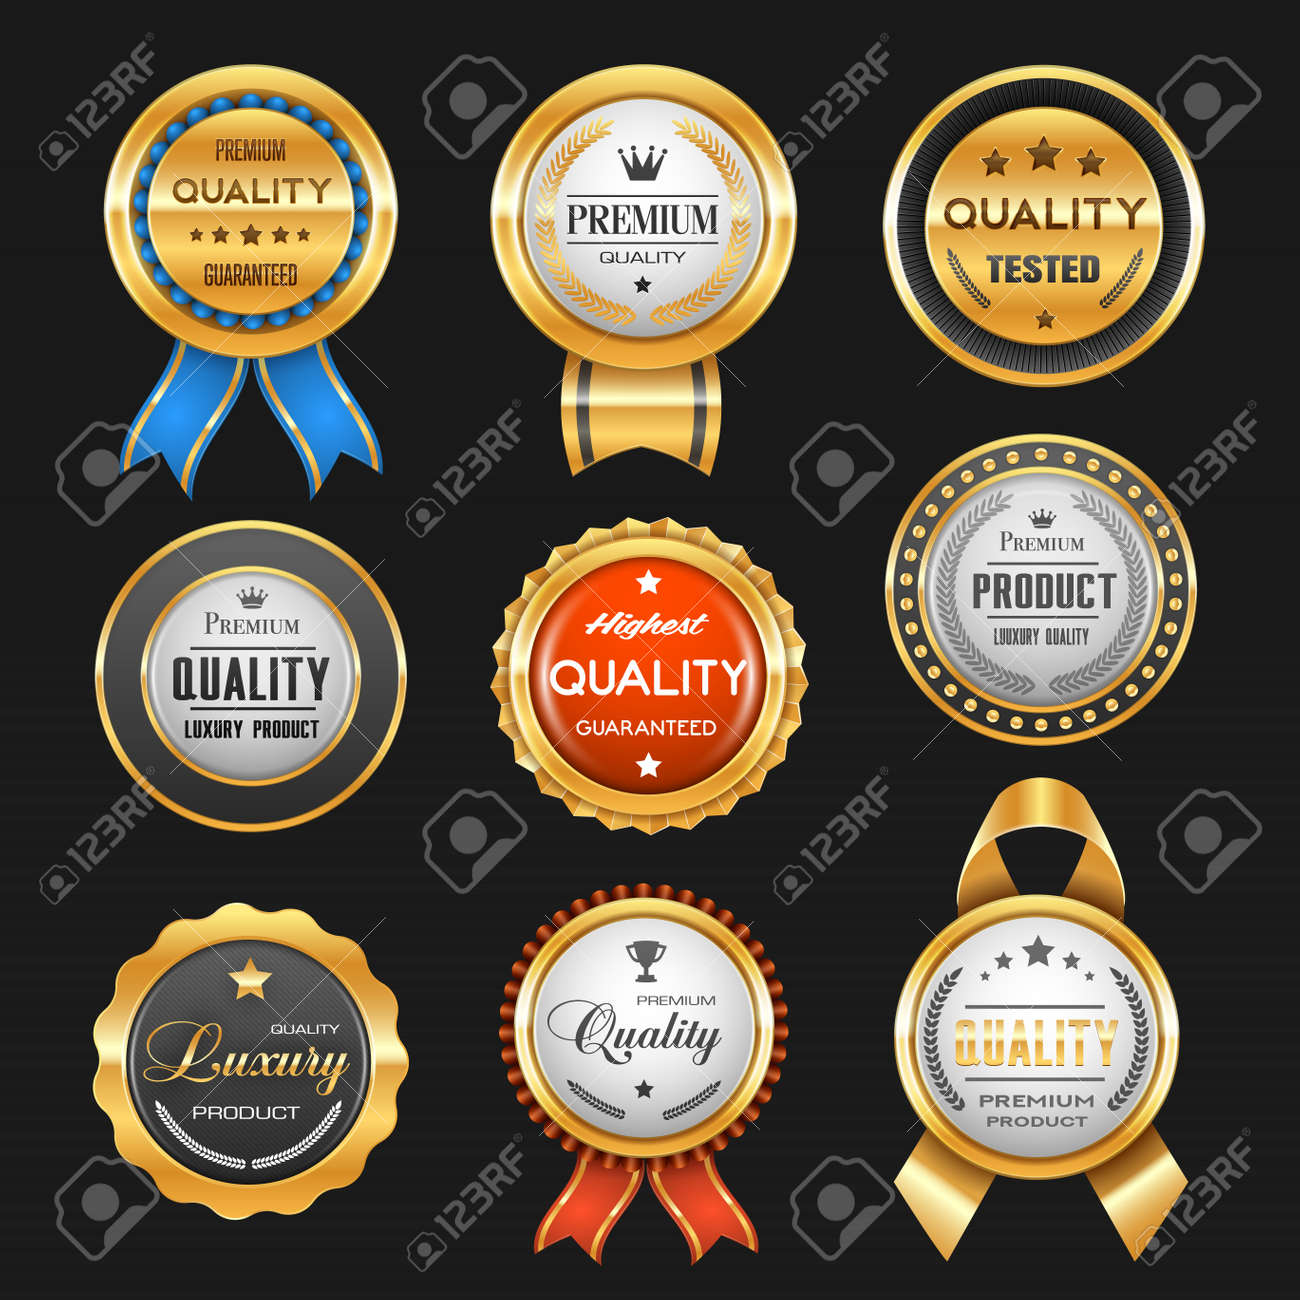 Business labels with vector gold badges of premium quality certificates. Best product award ribbon rosettes with glossy golden stars, royal crowns and winner trophy cups, laurel wreath and tapes - 156953888